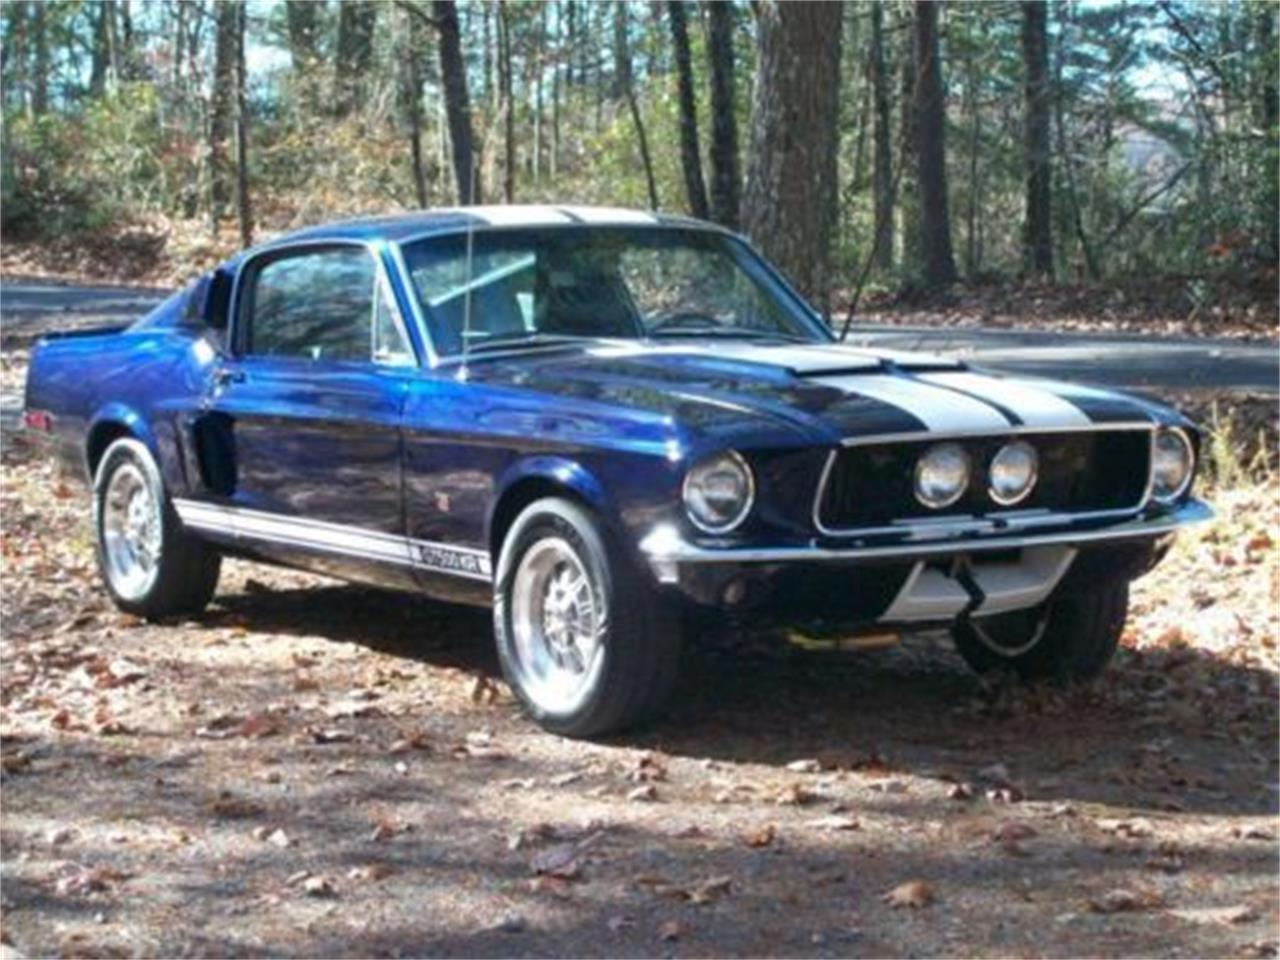 68 Fastback Mustang >> 1968 Ford Mustang For Sale In Cadillac Mi Classiccarsbay Com